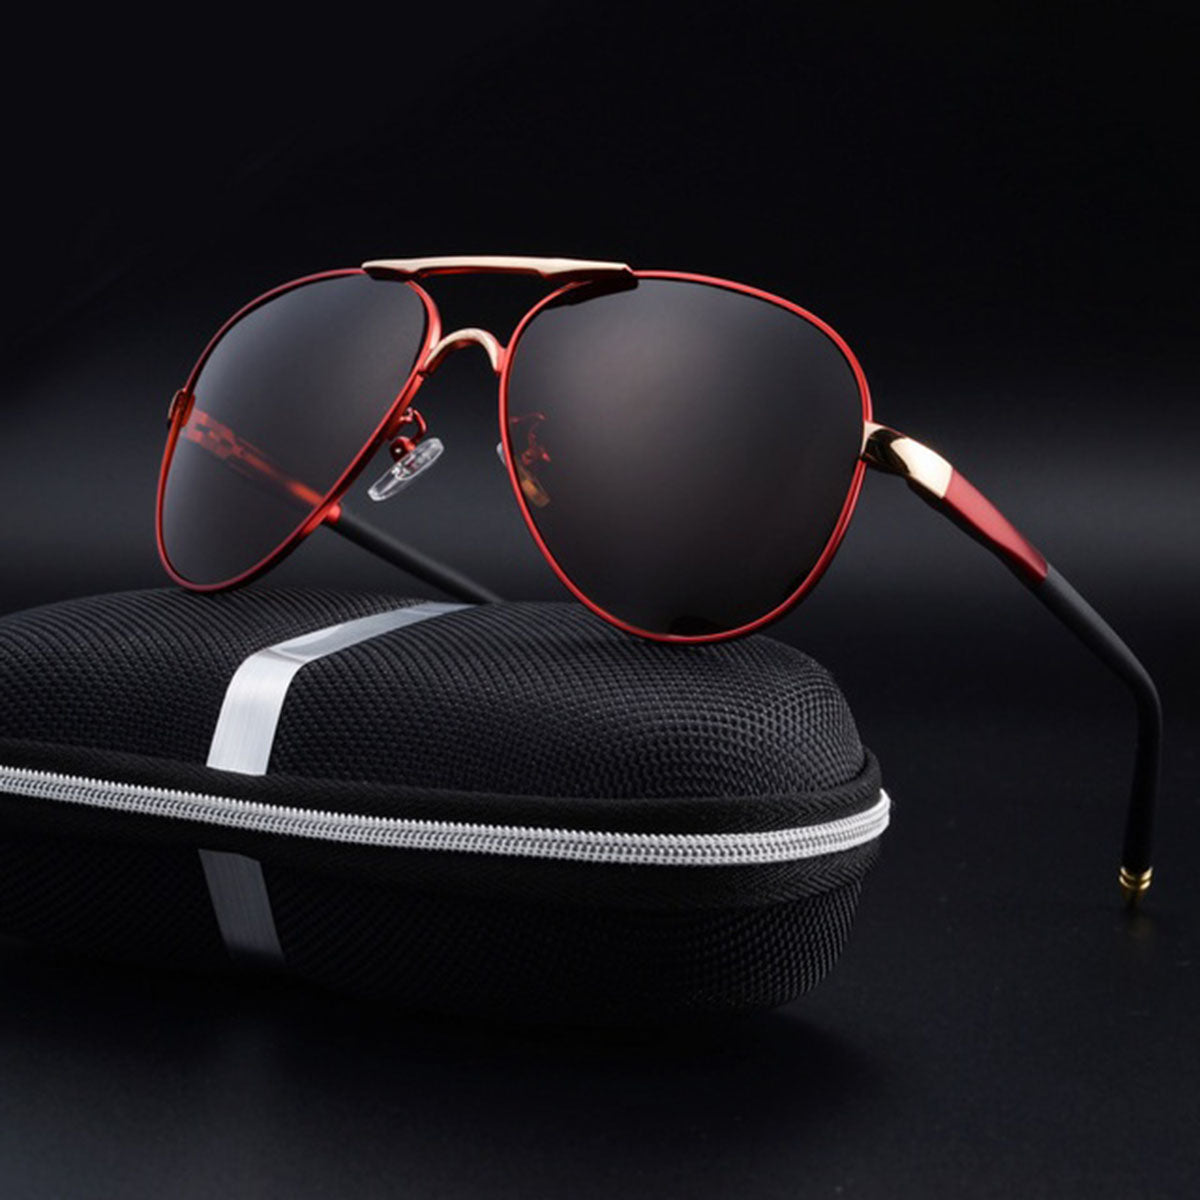 Vintage HD Polarized Sunglasses with UV Protection